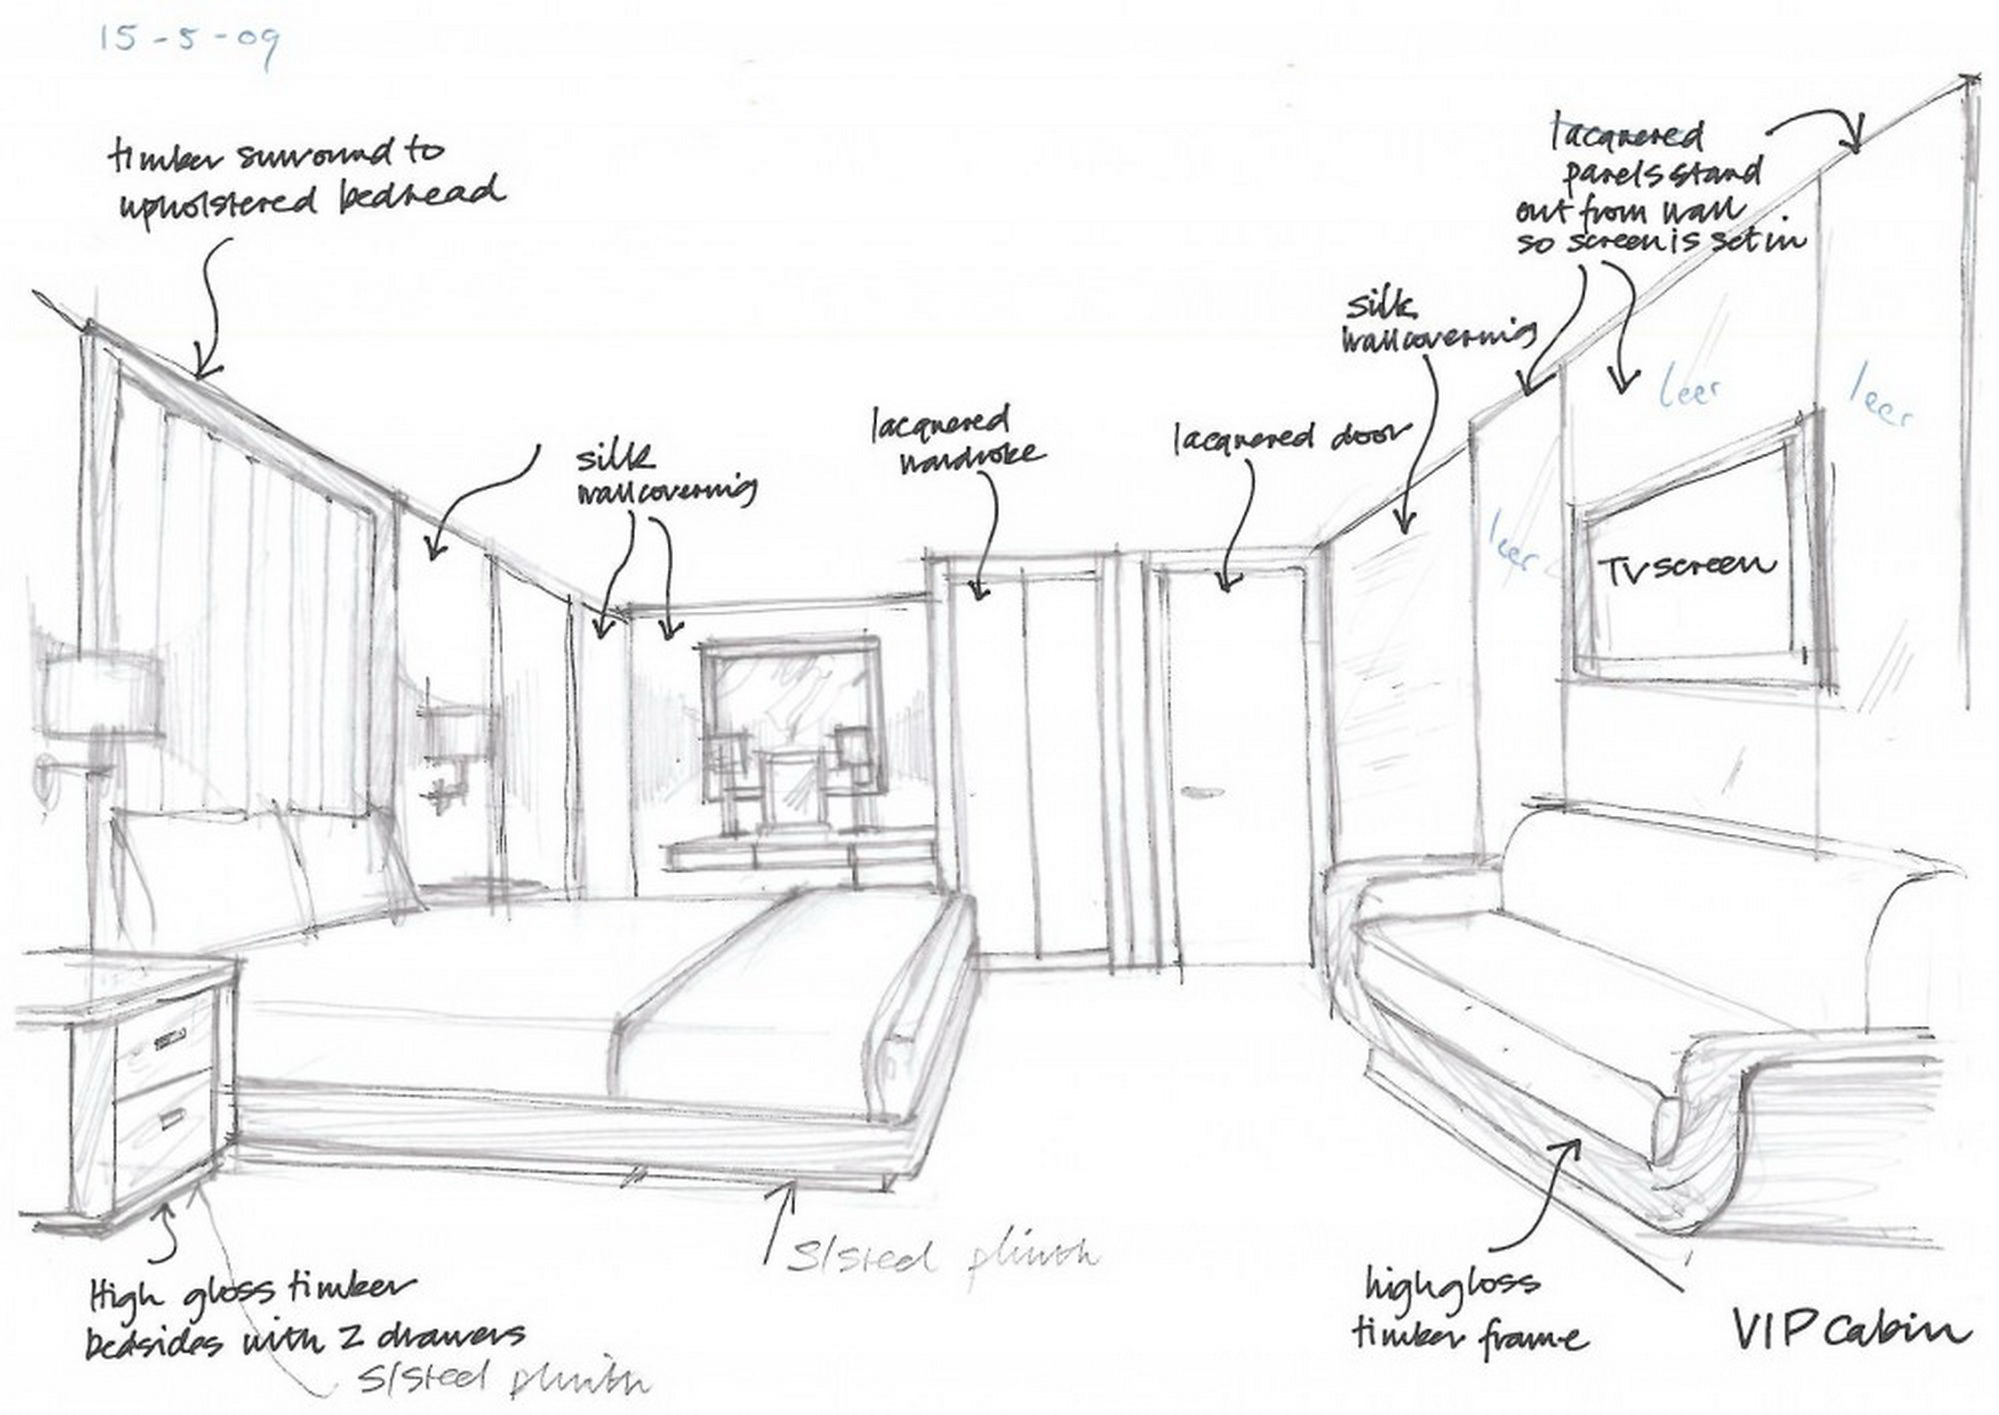 Interior design olivier van meer design naval architect for Interior designs sketches